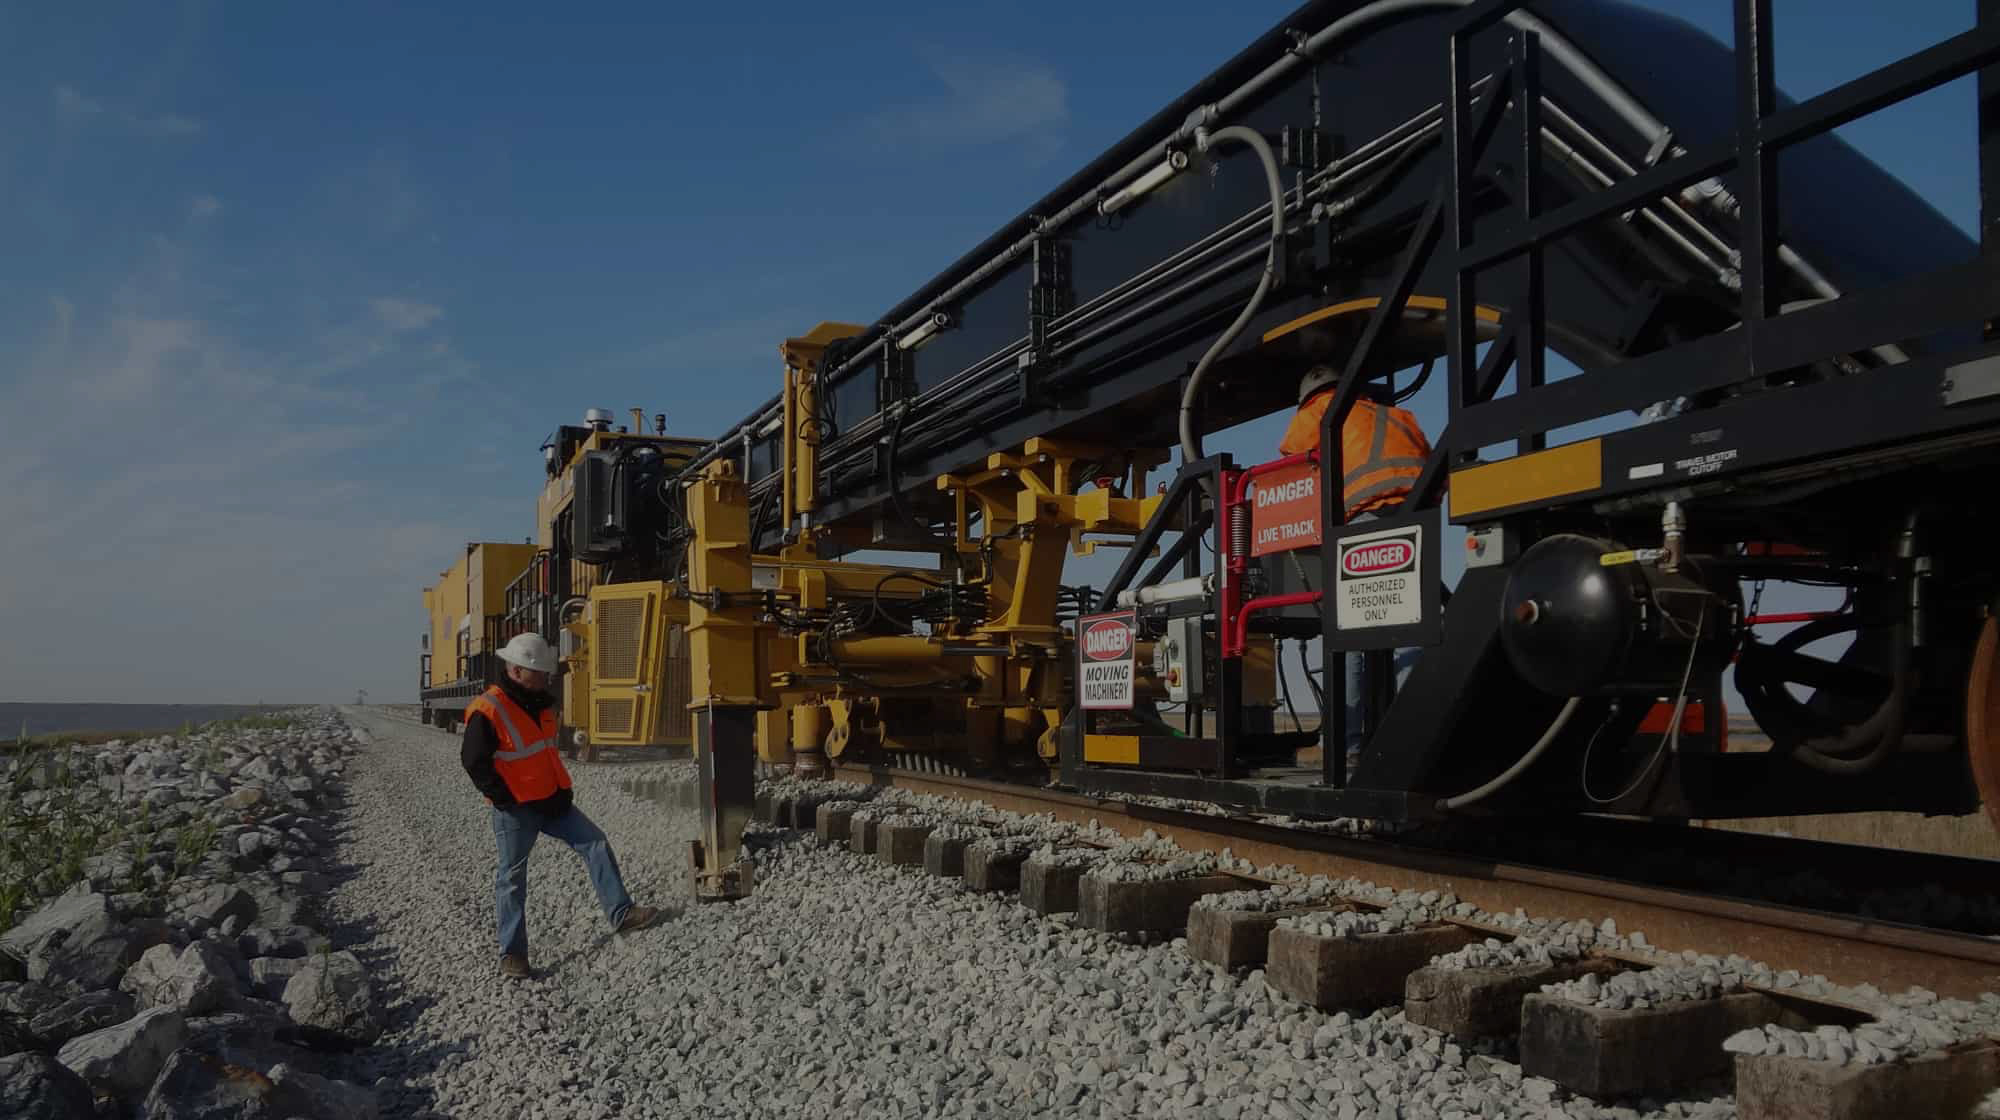 making rail track by professional engineers